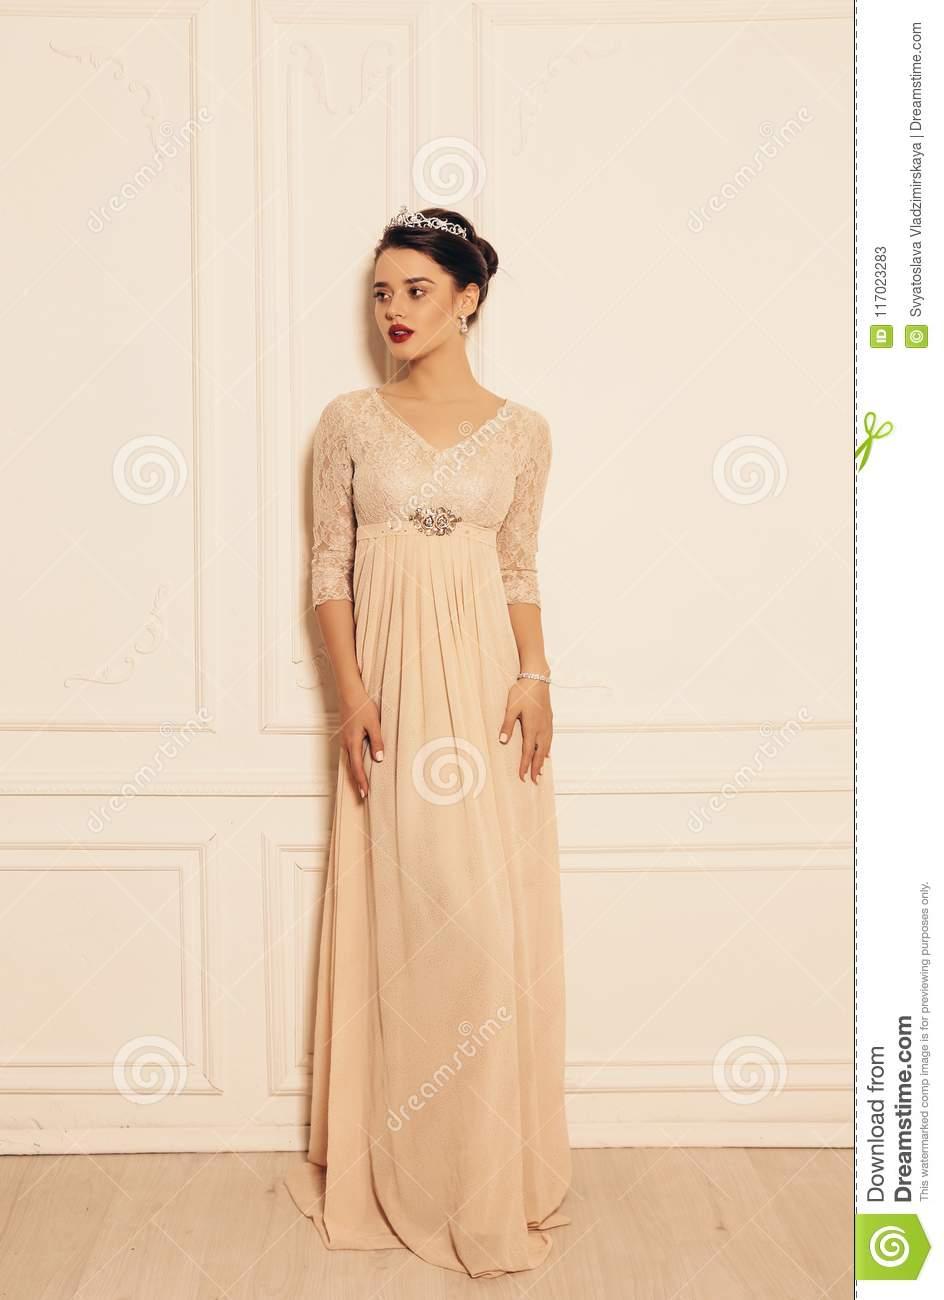 Woman With Dark Hair And Perfect Glowing Skin In Elegant Dress Stock Image Image Of Long Beautiful 117023283